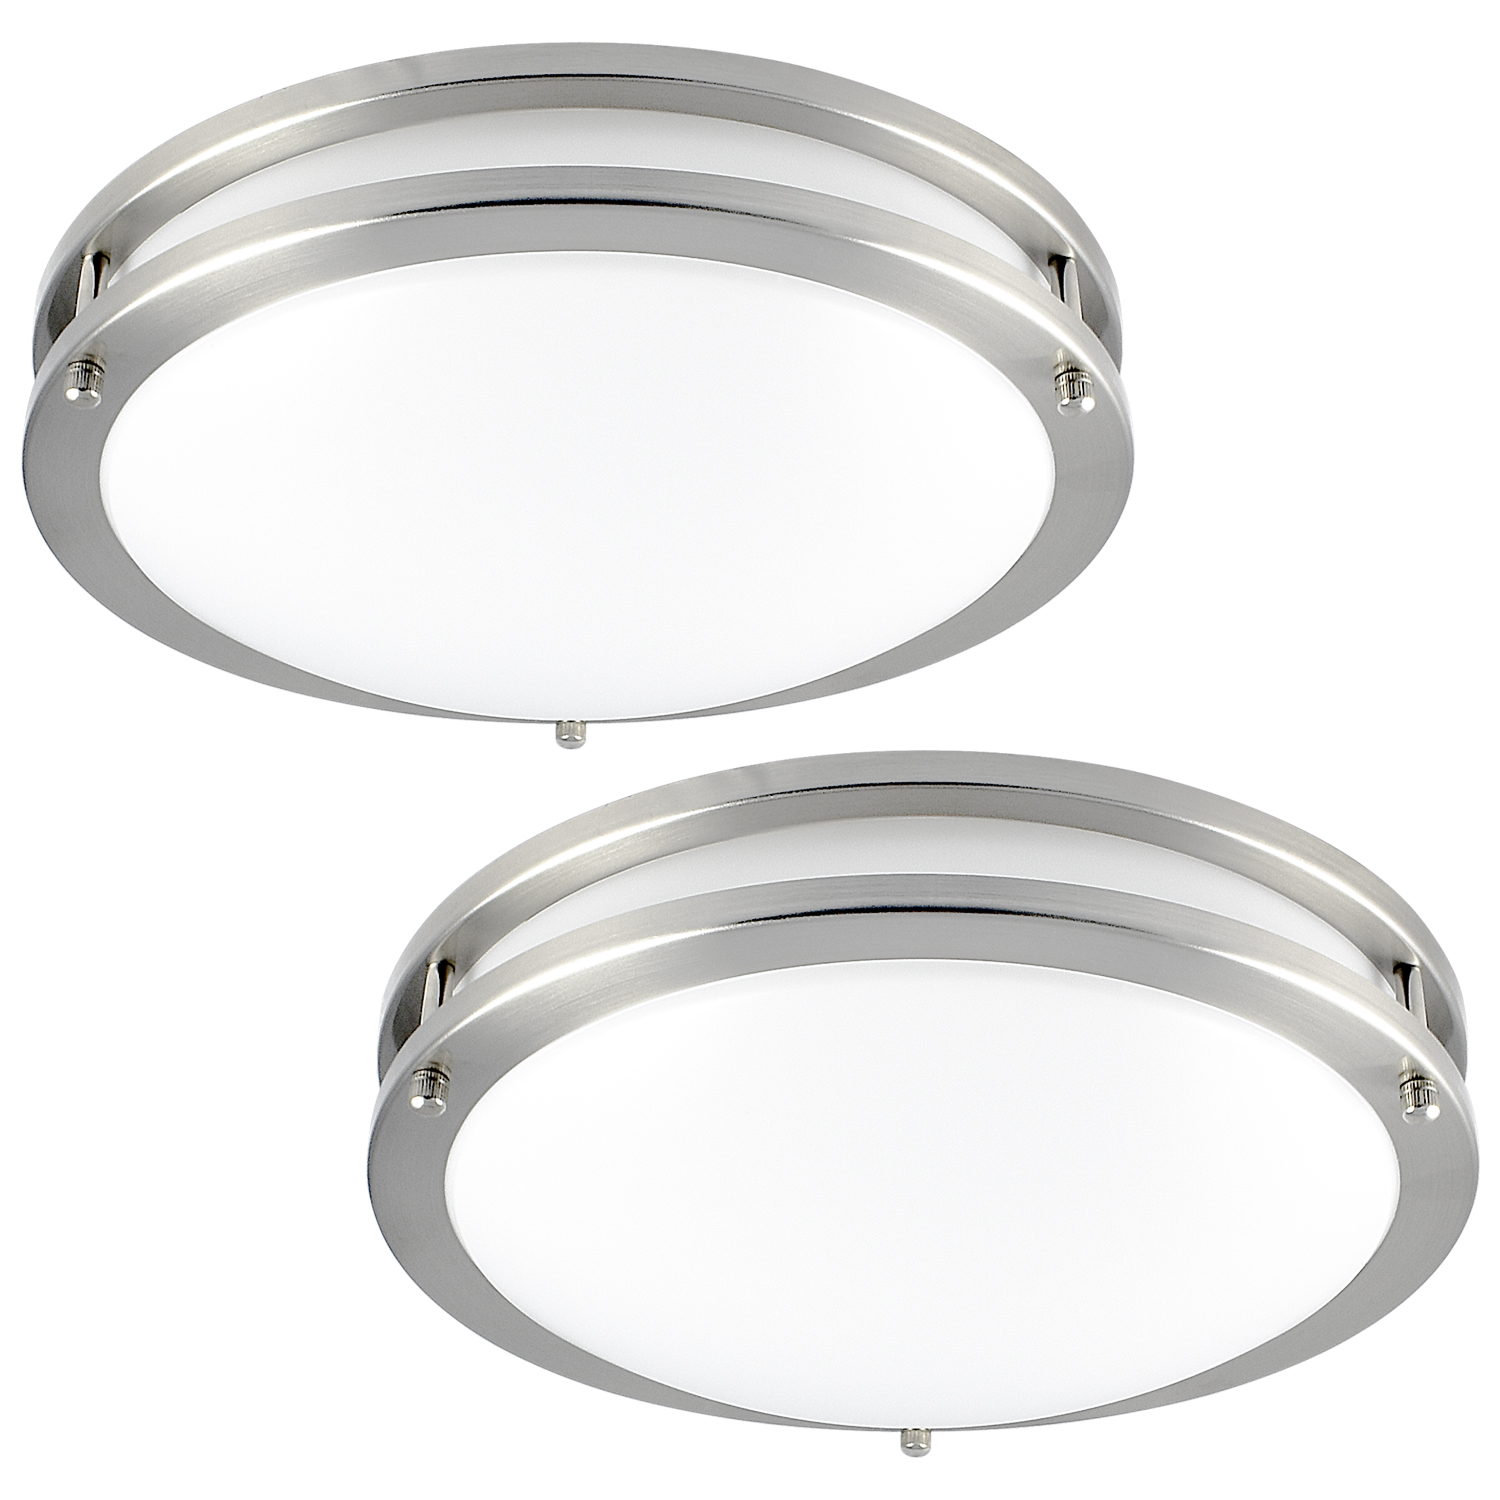 Luxrite LED Flush Mount Ceiling Light, 12 Inch, Dimmable